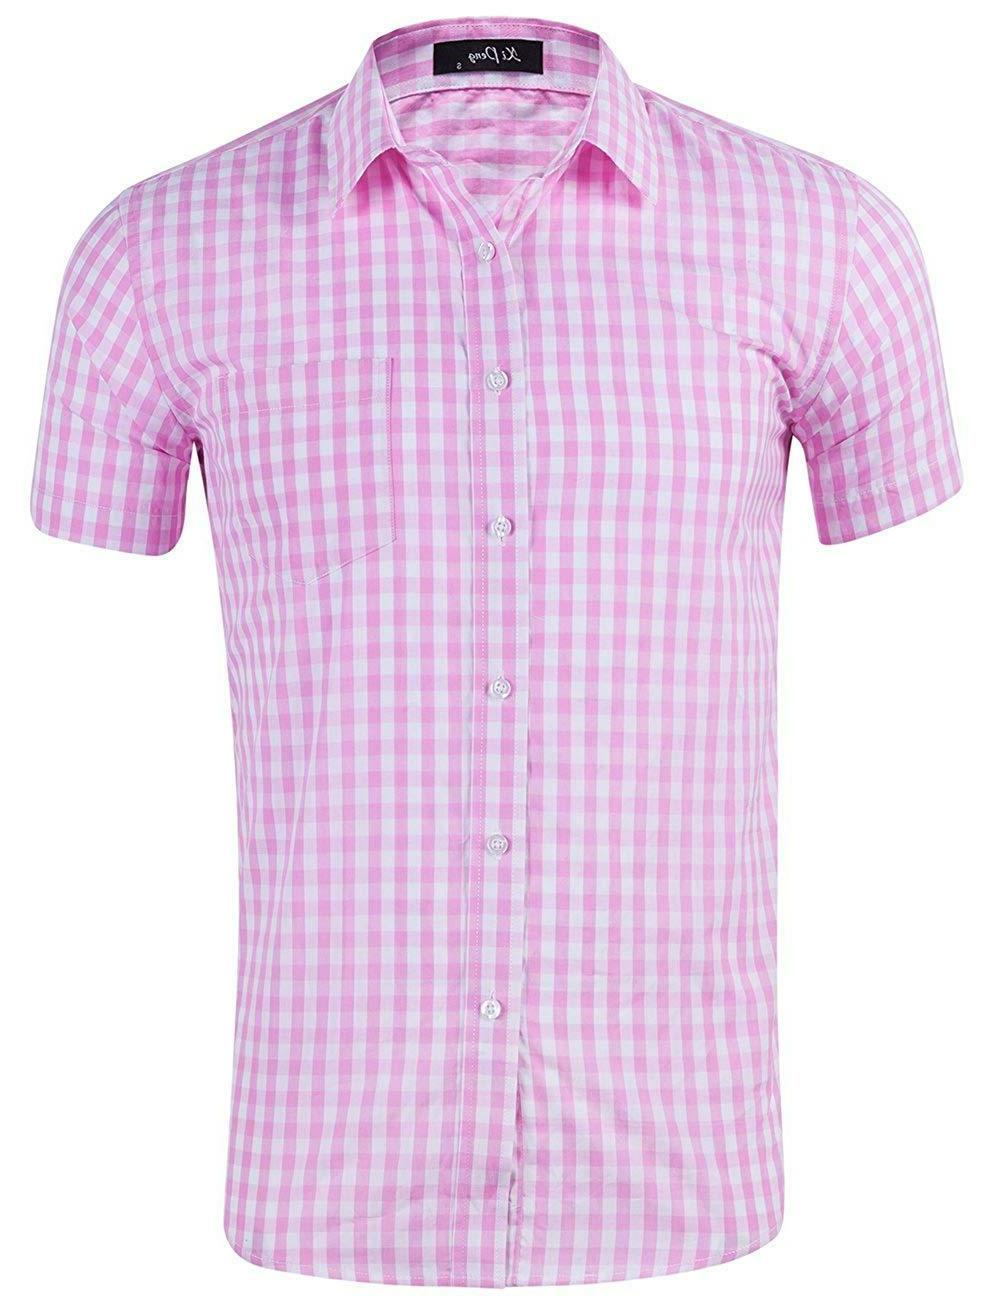 men s casual cotton plaid checkered gingham